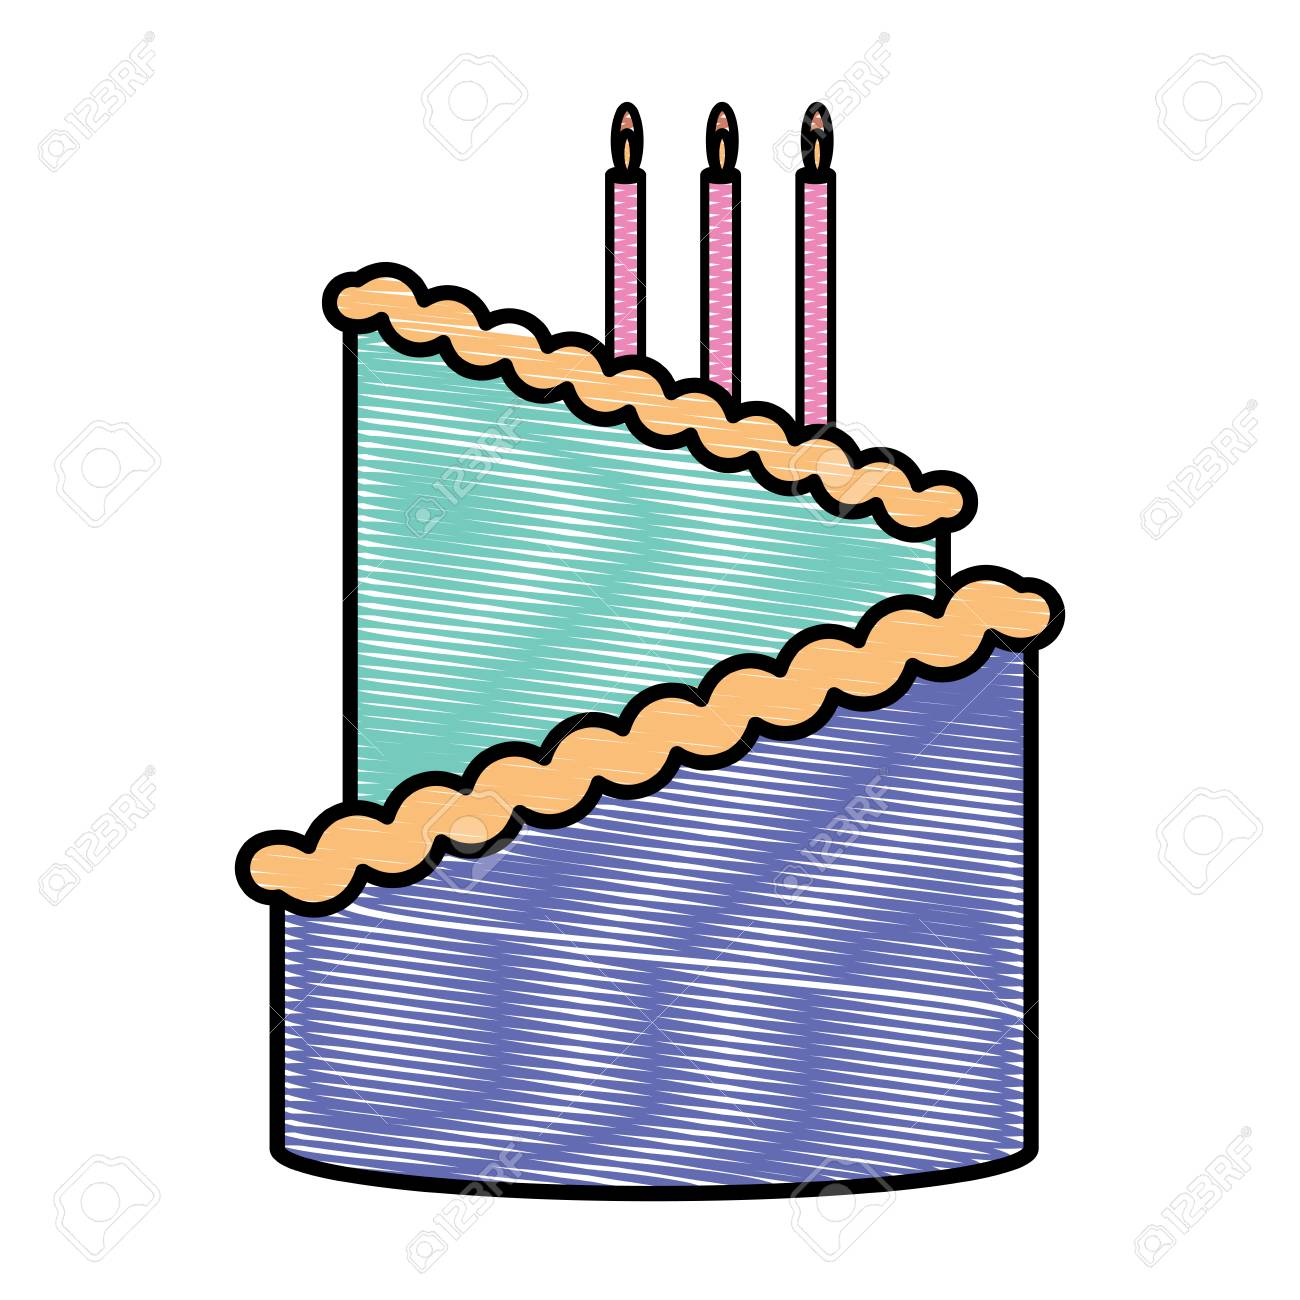 Birthday Cake With Candles Over White Background Colorful Design Vector Illustration Stock